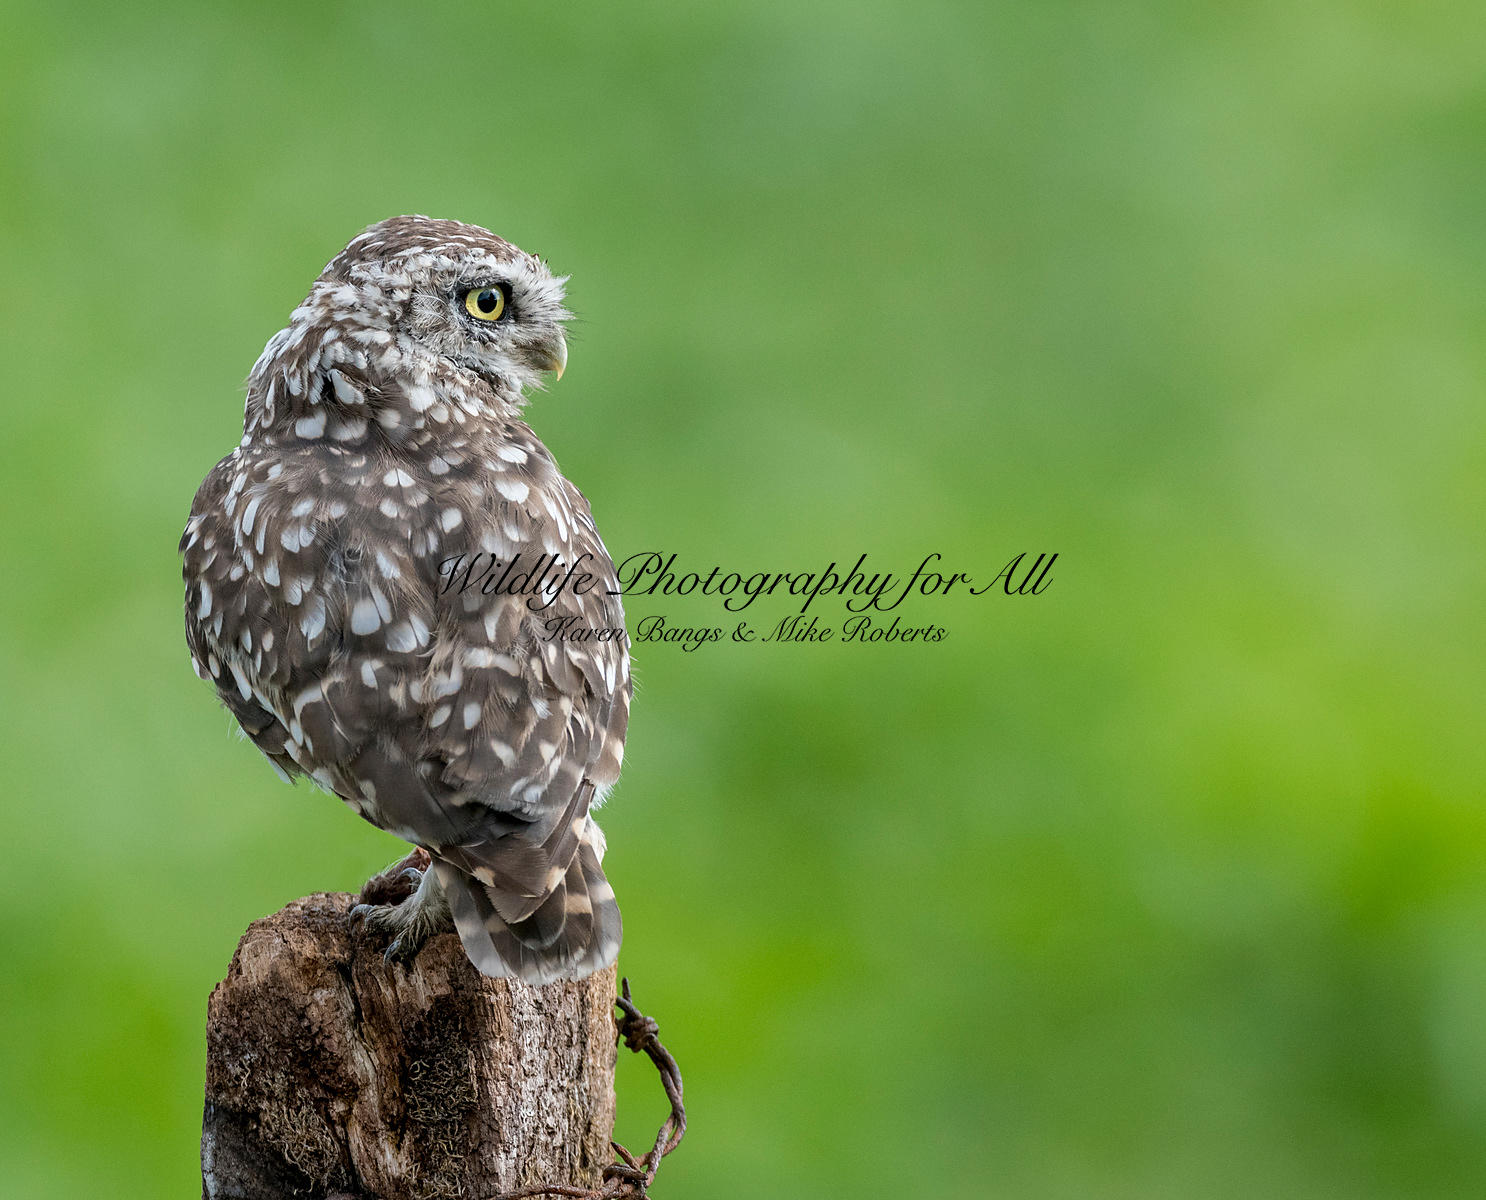 Male Little Owl - Mike Roberts